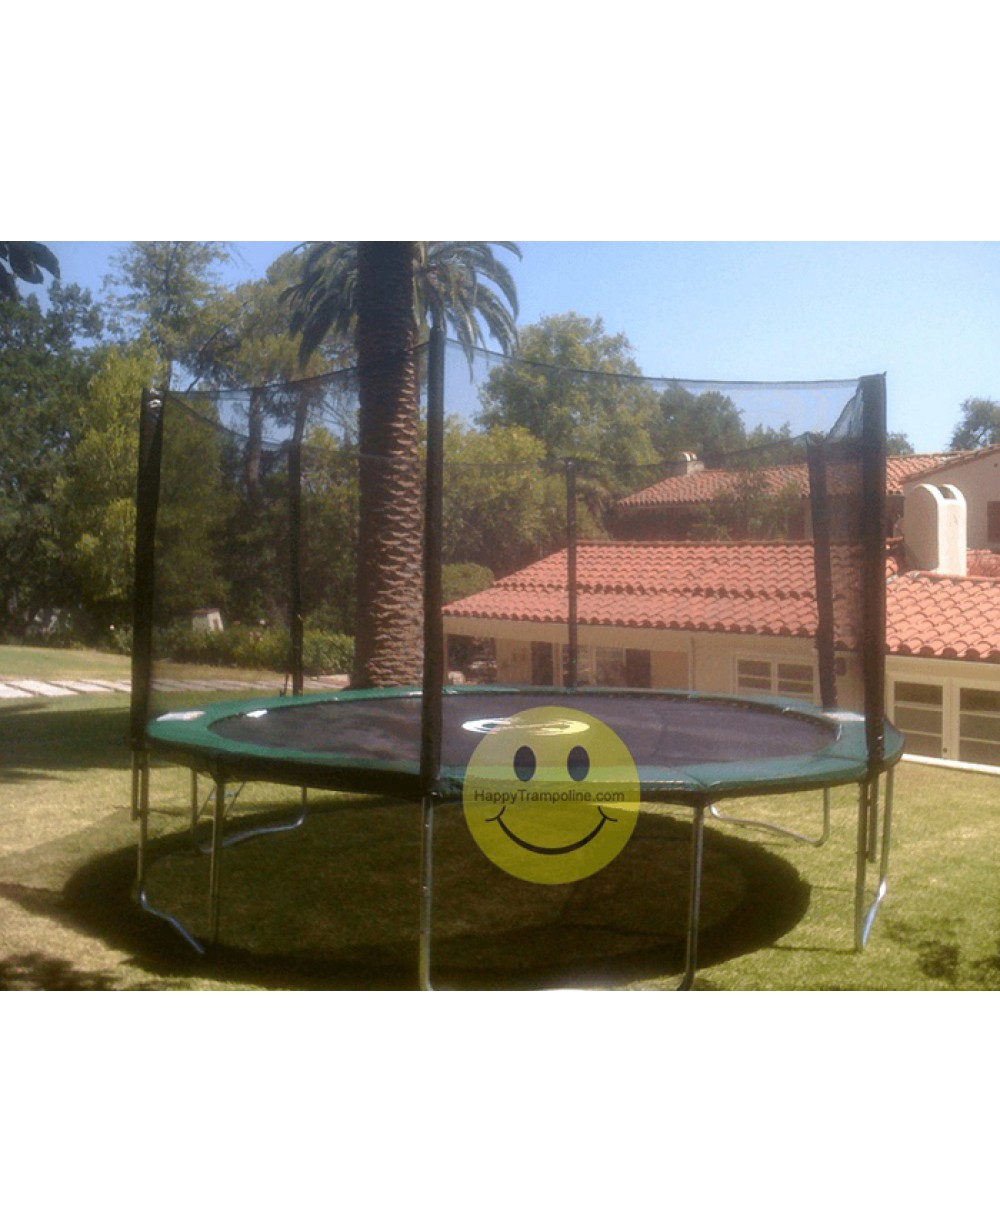 Safest Top Rated Trampolines: 16 Foot Top Rated Infinity Bounce Trampoline For Sale With